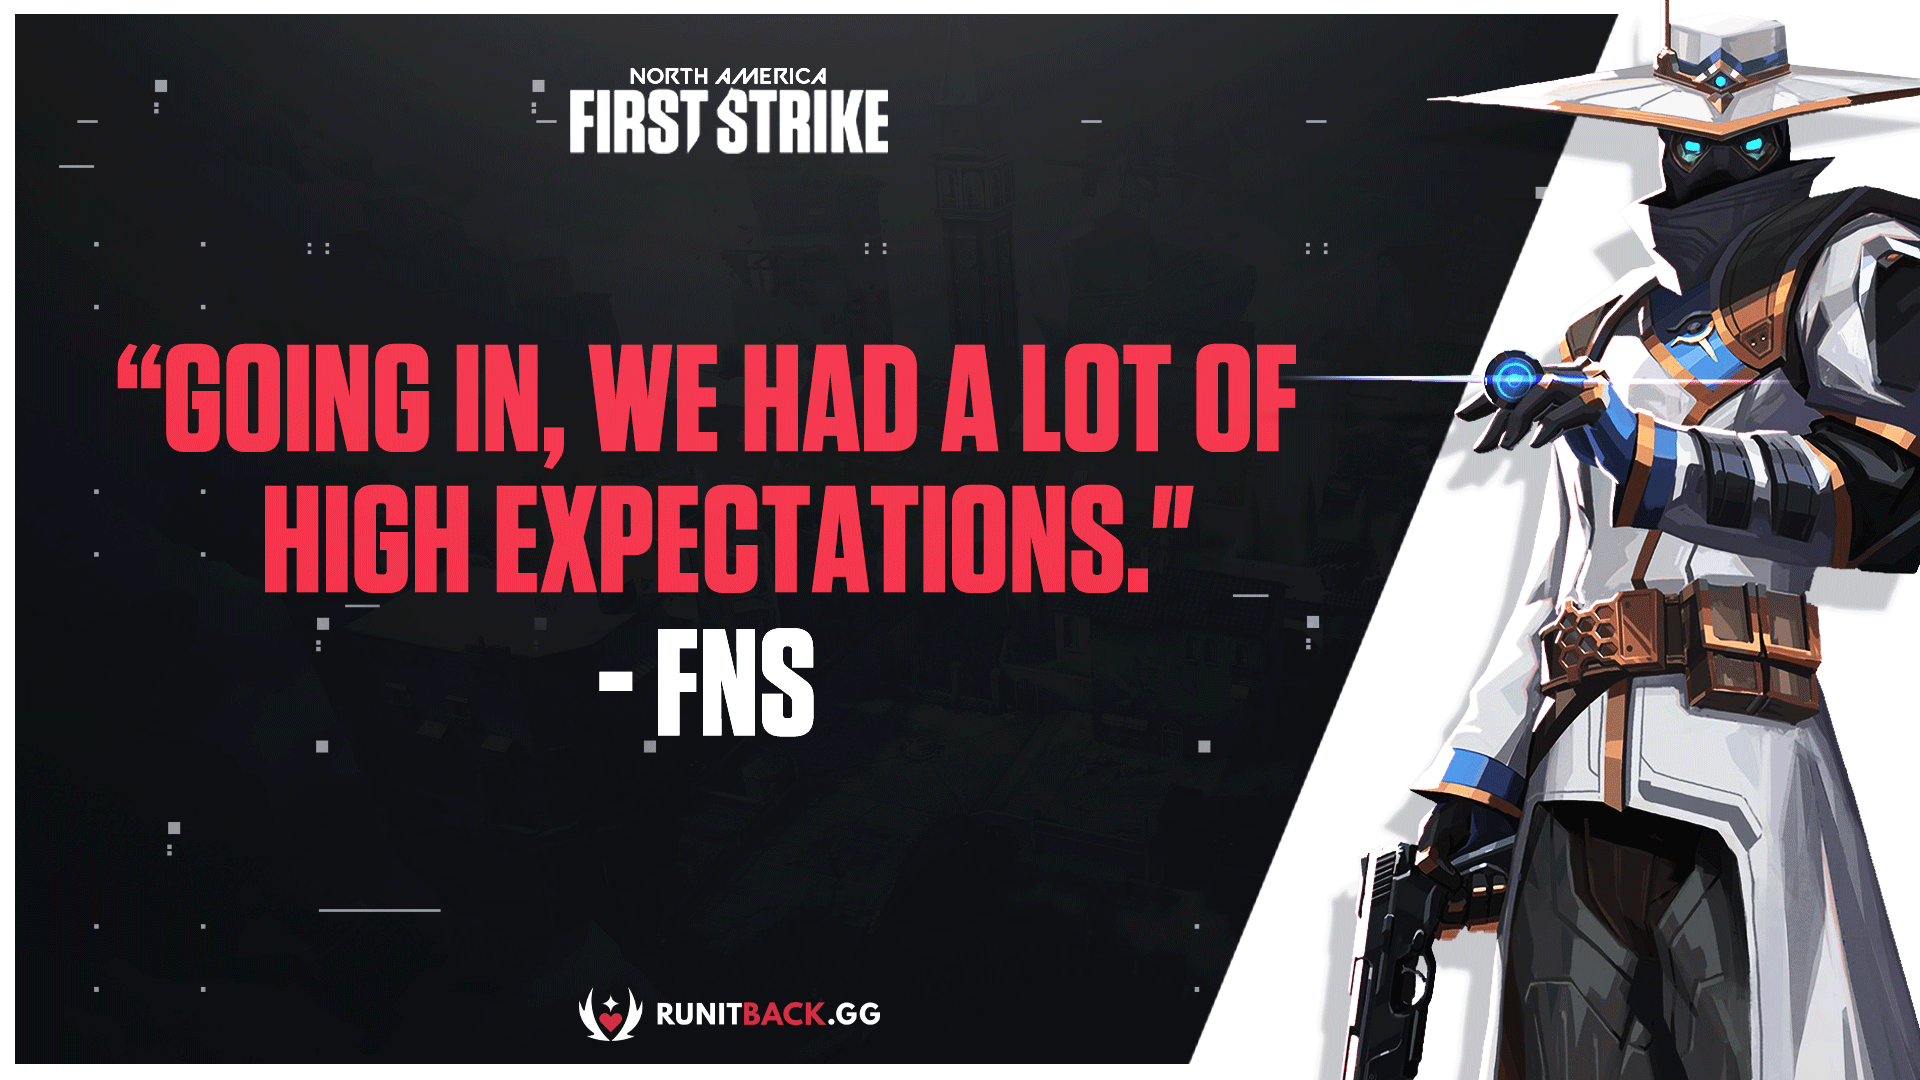 Team Envy's FNS discusses game plan against Immortals and more